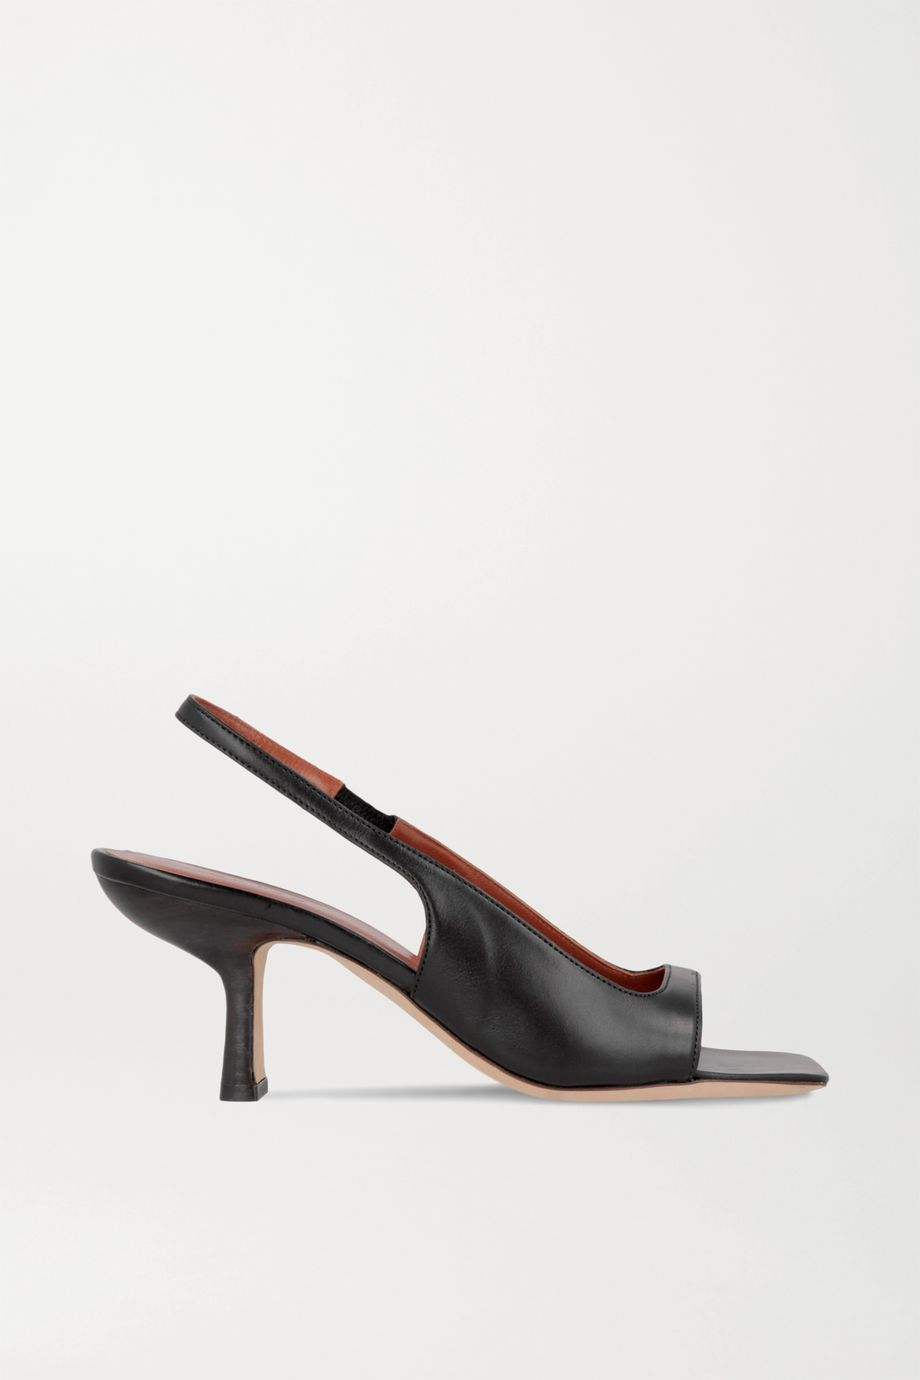 BY FAR Lopez leather slingback sandals